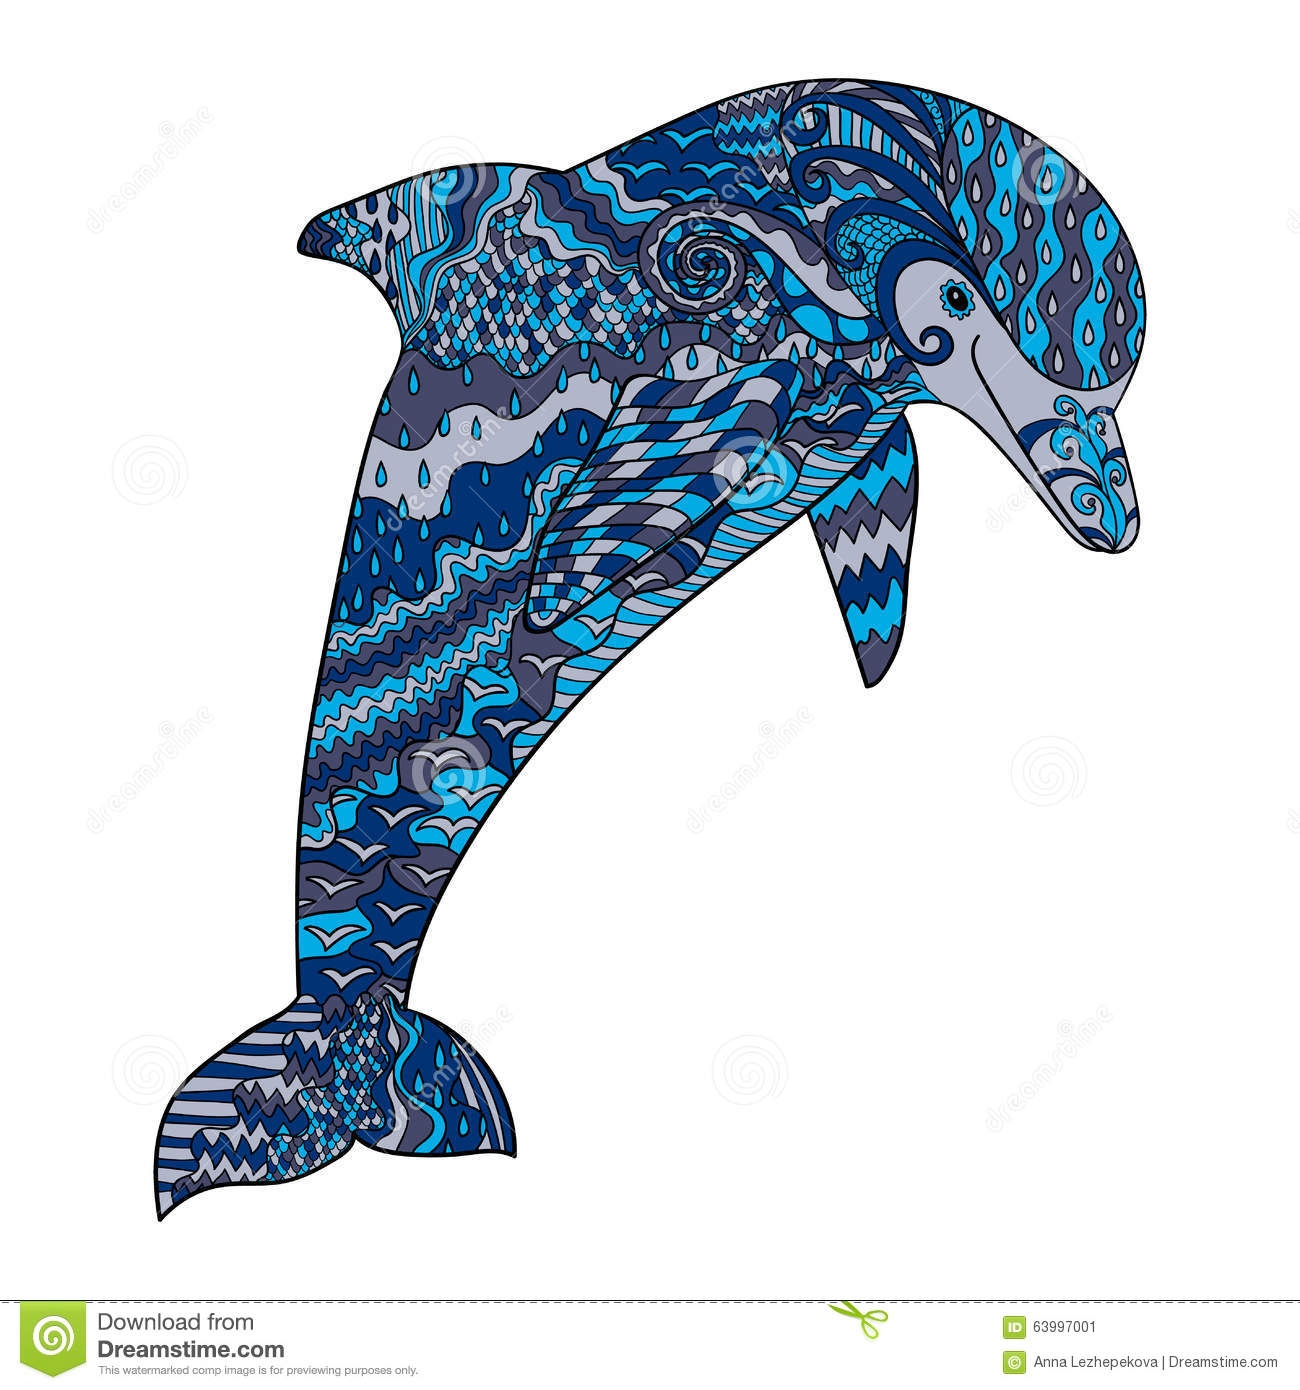 ocean coloring pages for adults - stock illustration color hand drawn doodle dolphin happy high details adult antistress coloring page colored oceanic animal sketch tattoo image